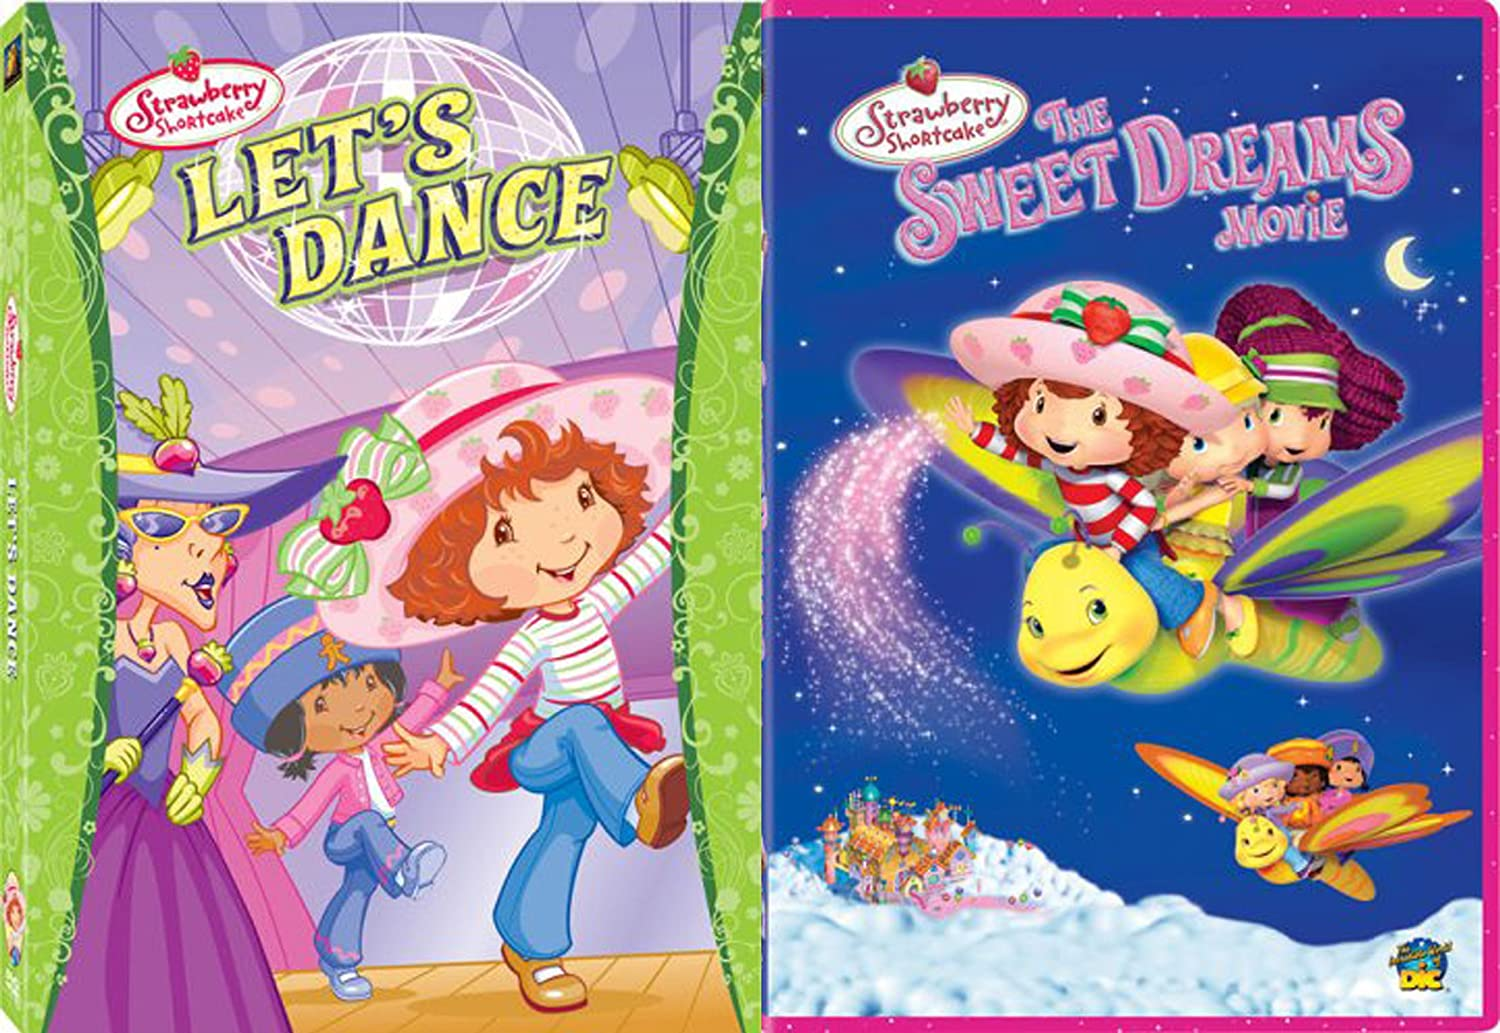 Amazon Com Strawberry Shortcake 2 Dvd Bundle Let S Dance The Sweetest Dreams Movie 2 Movie Collection Various Various Movies Tv